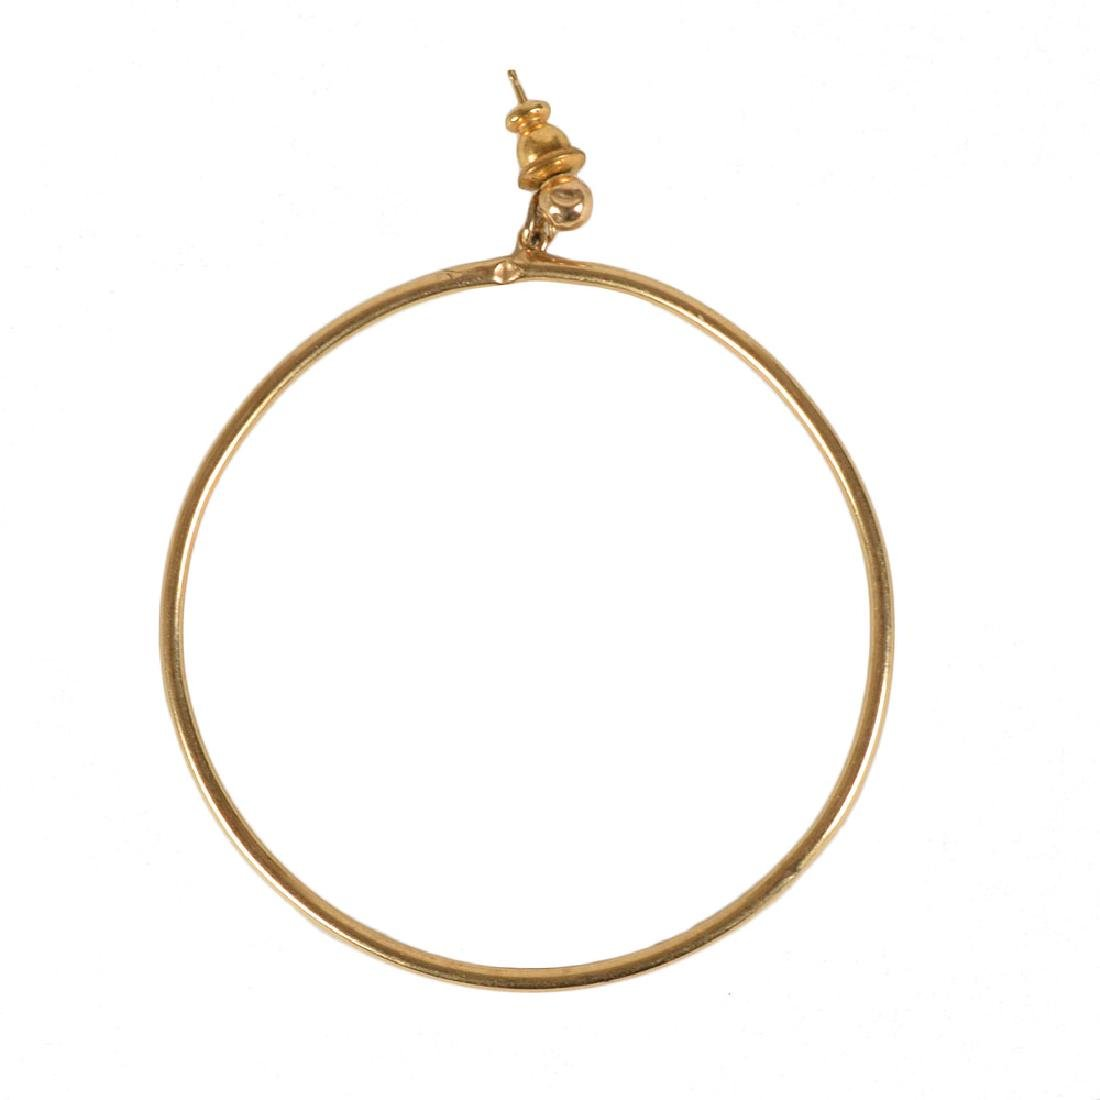 Prince's Personally-Owned and -Worn Hoop Earring